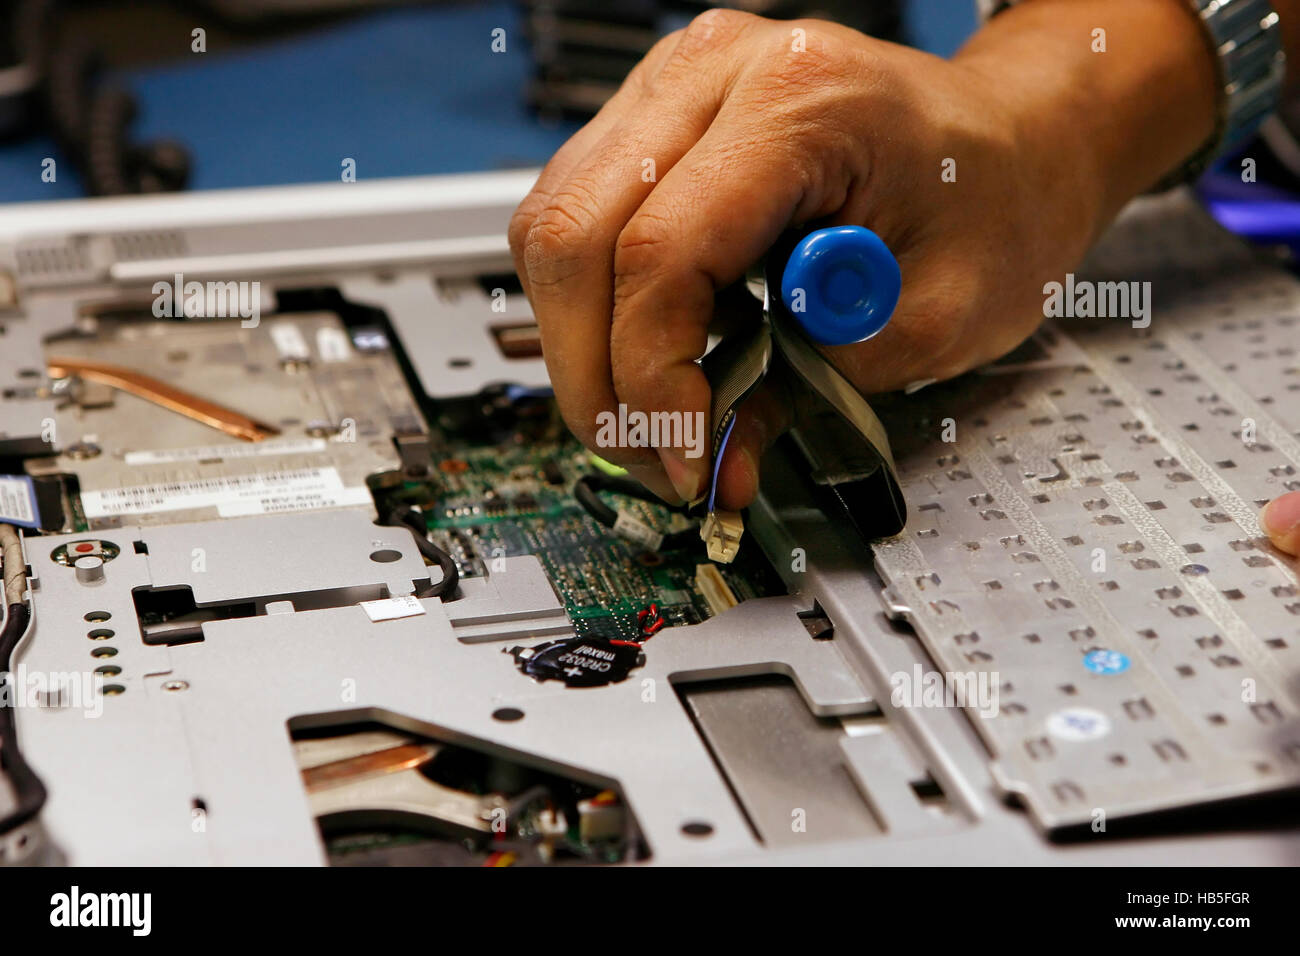 A worker at a computer recycling company in Austin, Texas takes apart a Dell laptop for recycling.  Photo by Erich Stock Photo